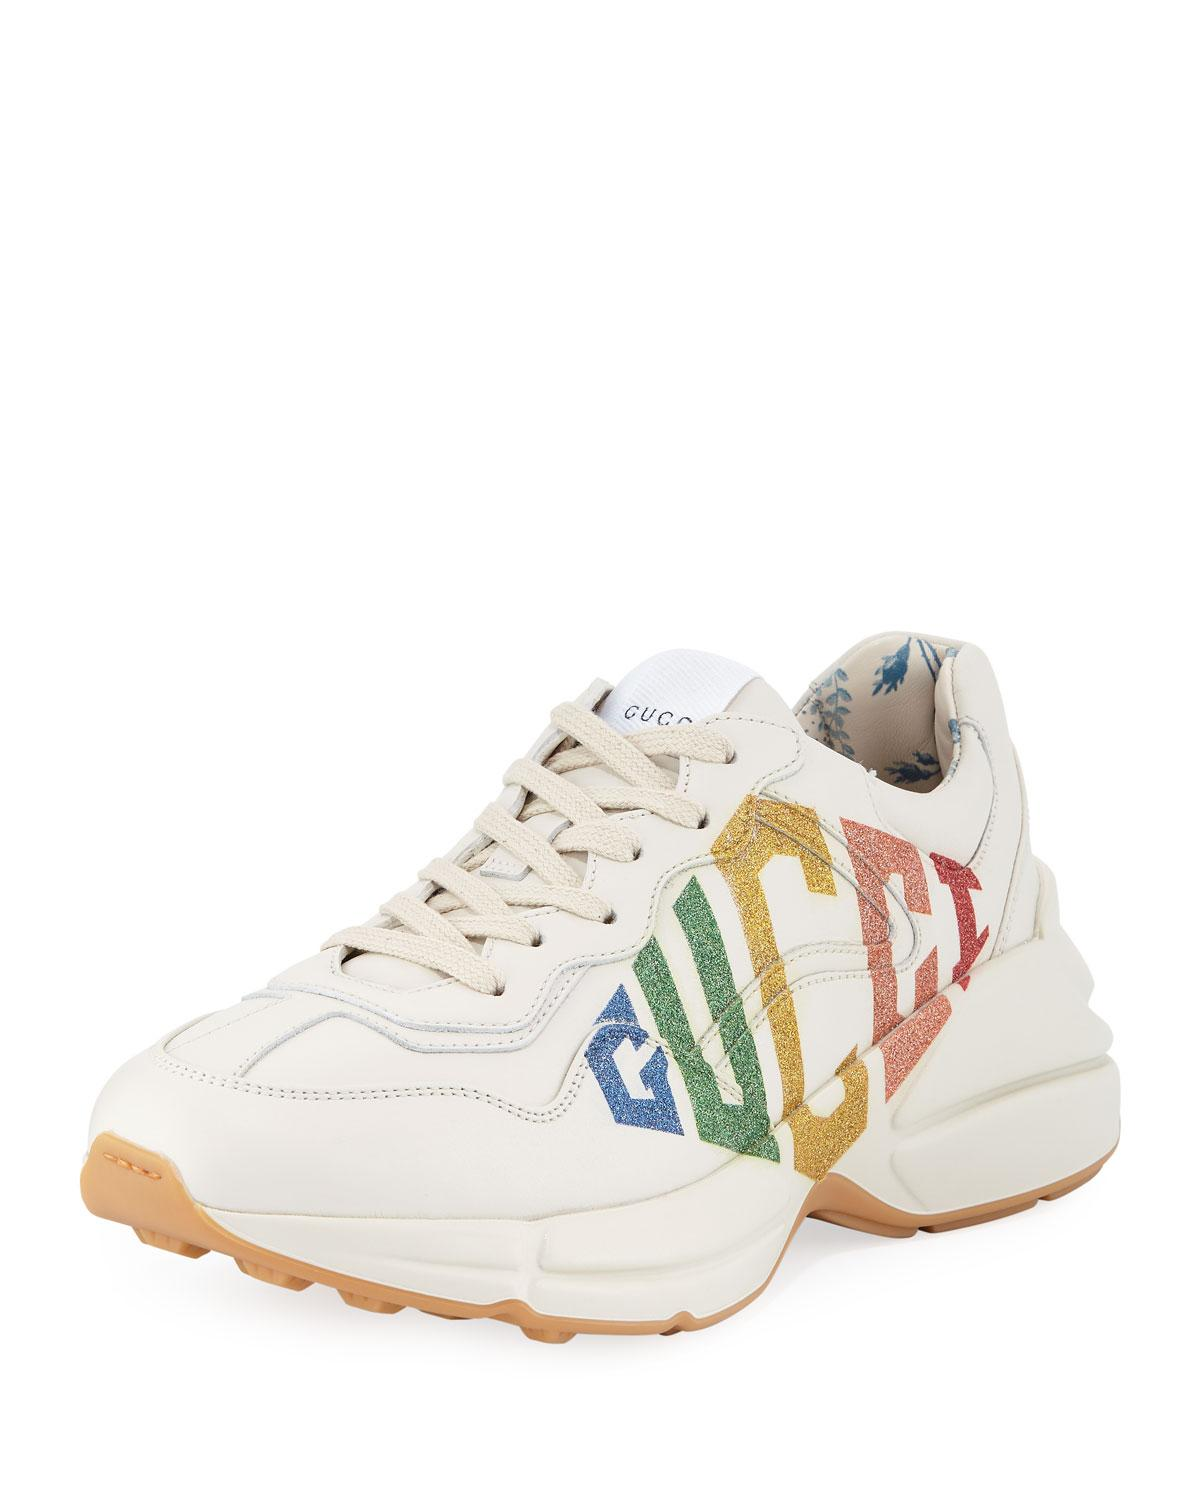 9b7f176951f Women's White Rhyton Rainbow Leather Trainer